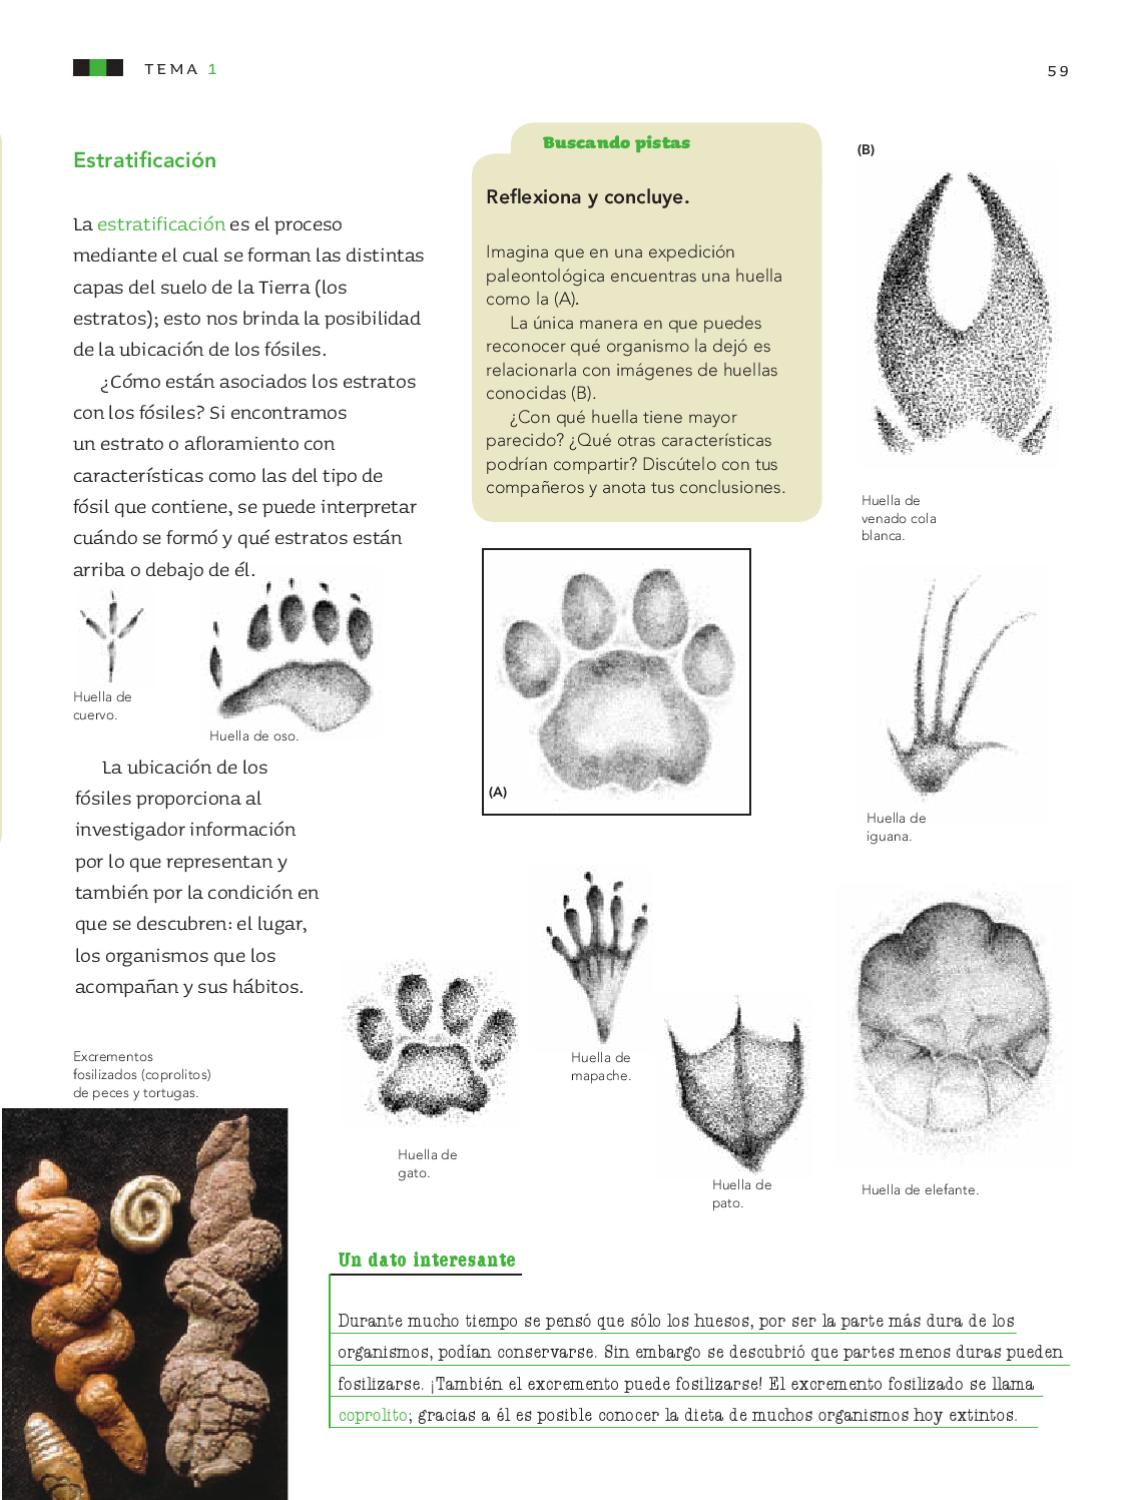 Ciencias naturales 6to grado by rar muri page 61 issuu for Capas que forman el suelo